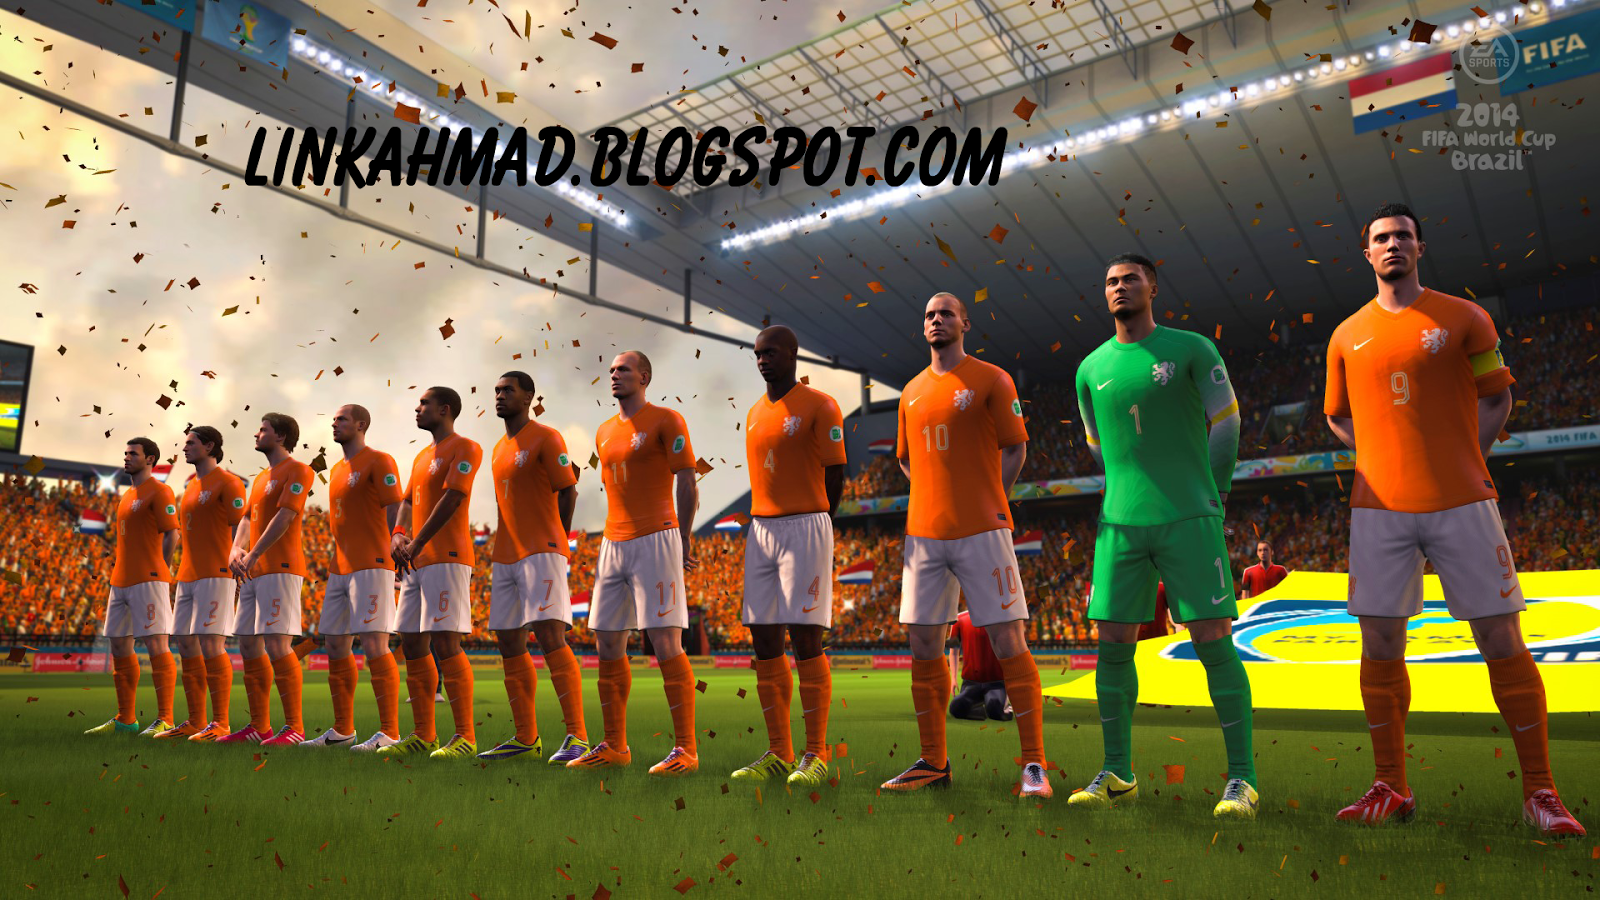 free download fifa world cup 2014 game for pc